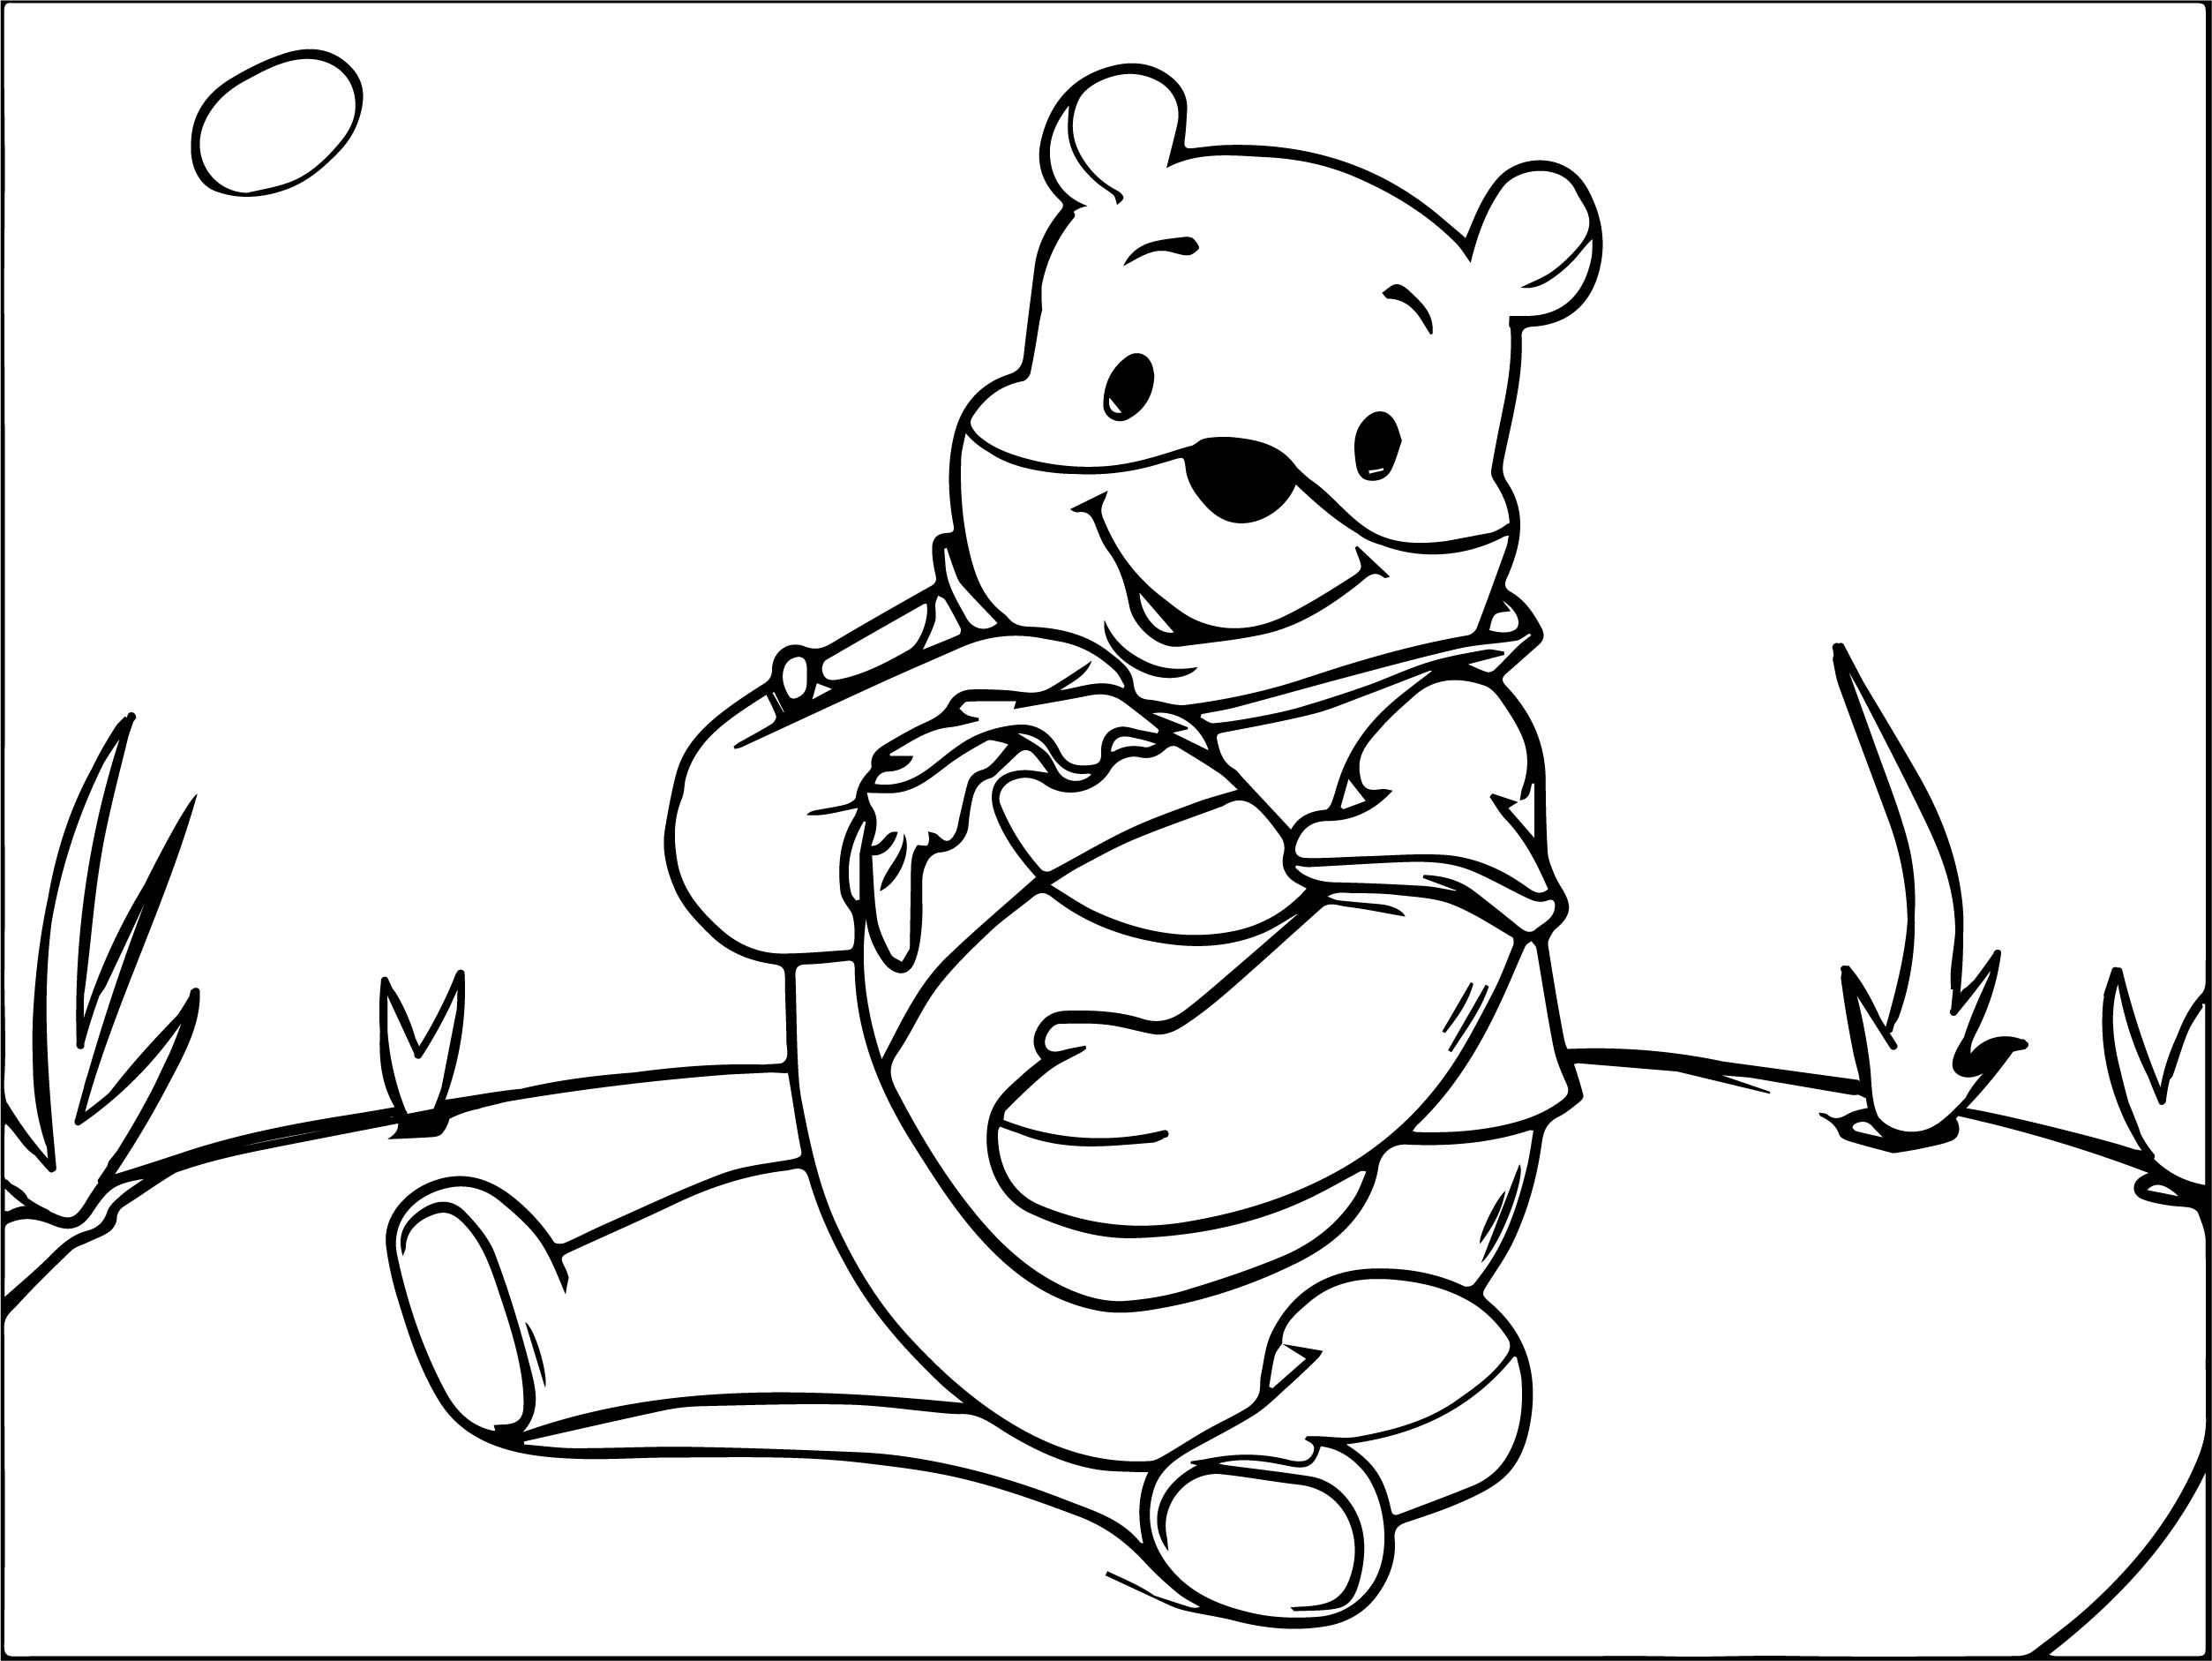 Winnie The Pooh Honey Thief Coloring Page